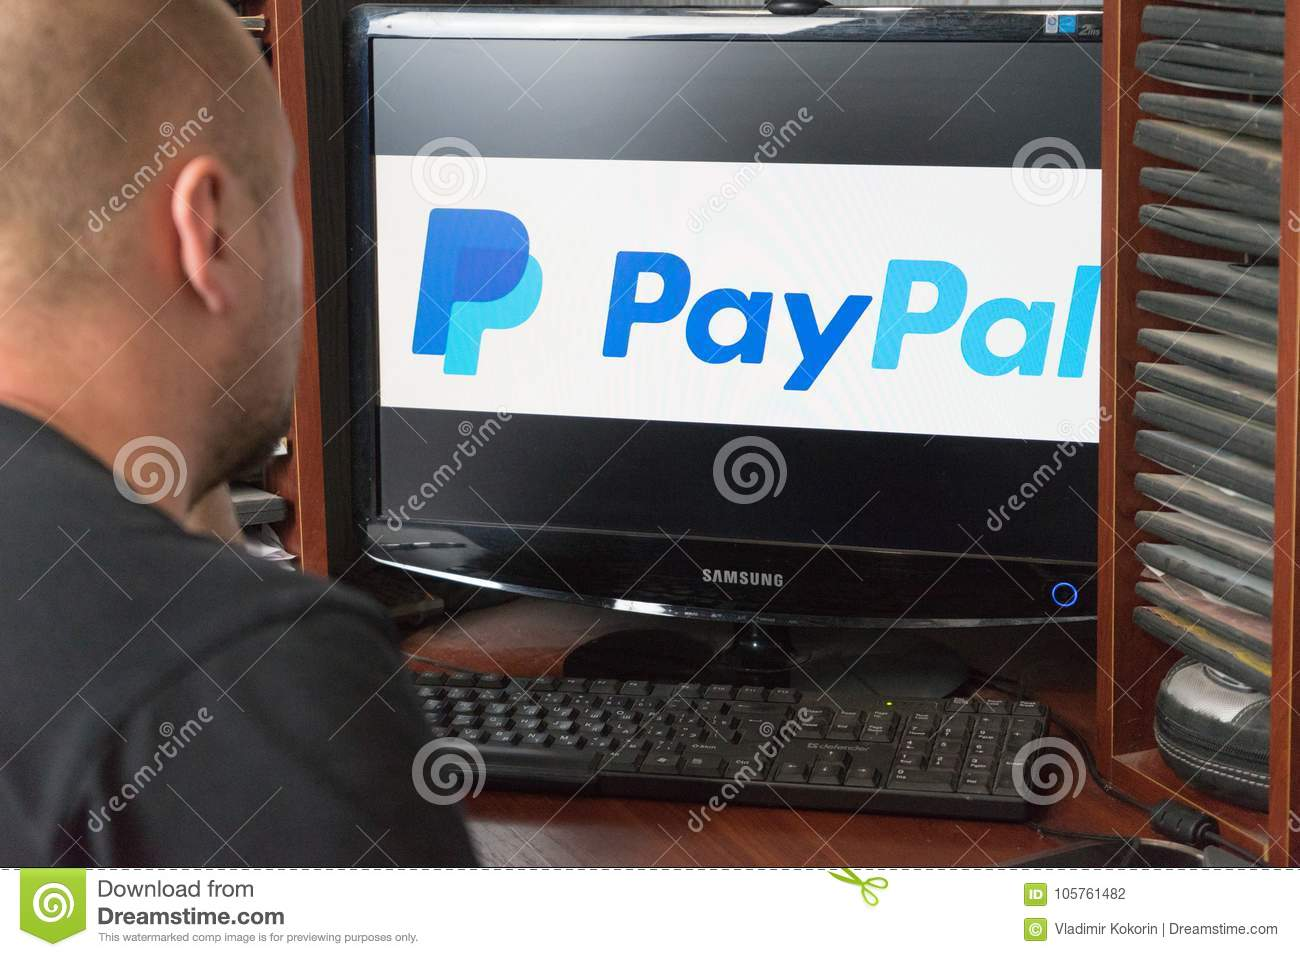 Belgorod, Russia - December 11, 2017: The Man Uses The PayPal